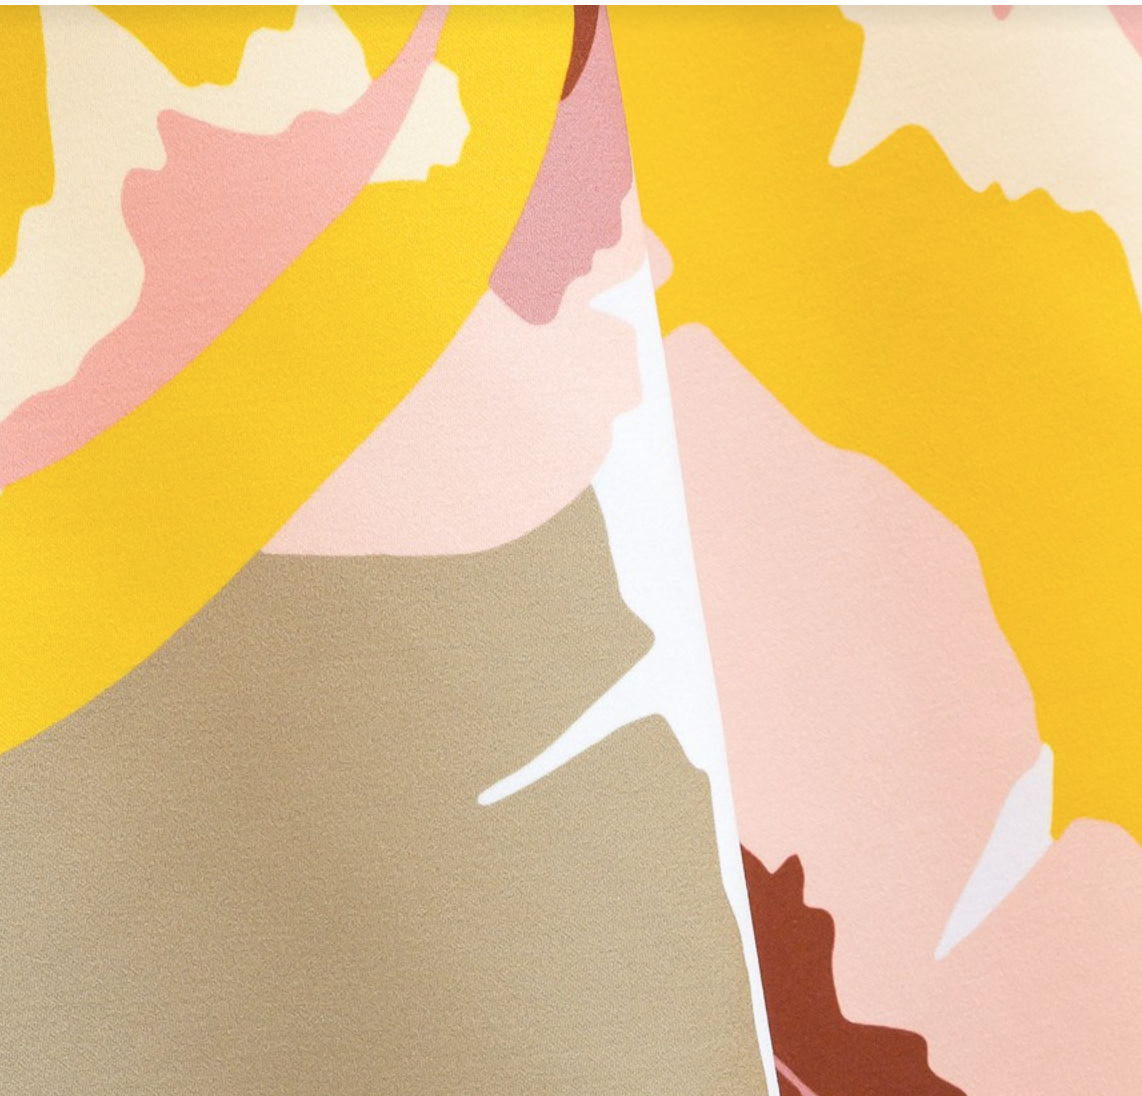 'Palma' fabric by Lelievre. This being the 0752-02 colourway. Hot pops of mustard set against warm taupe, pinks and blue.